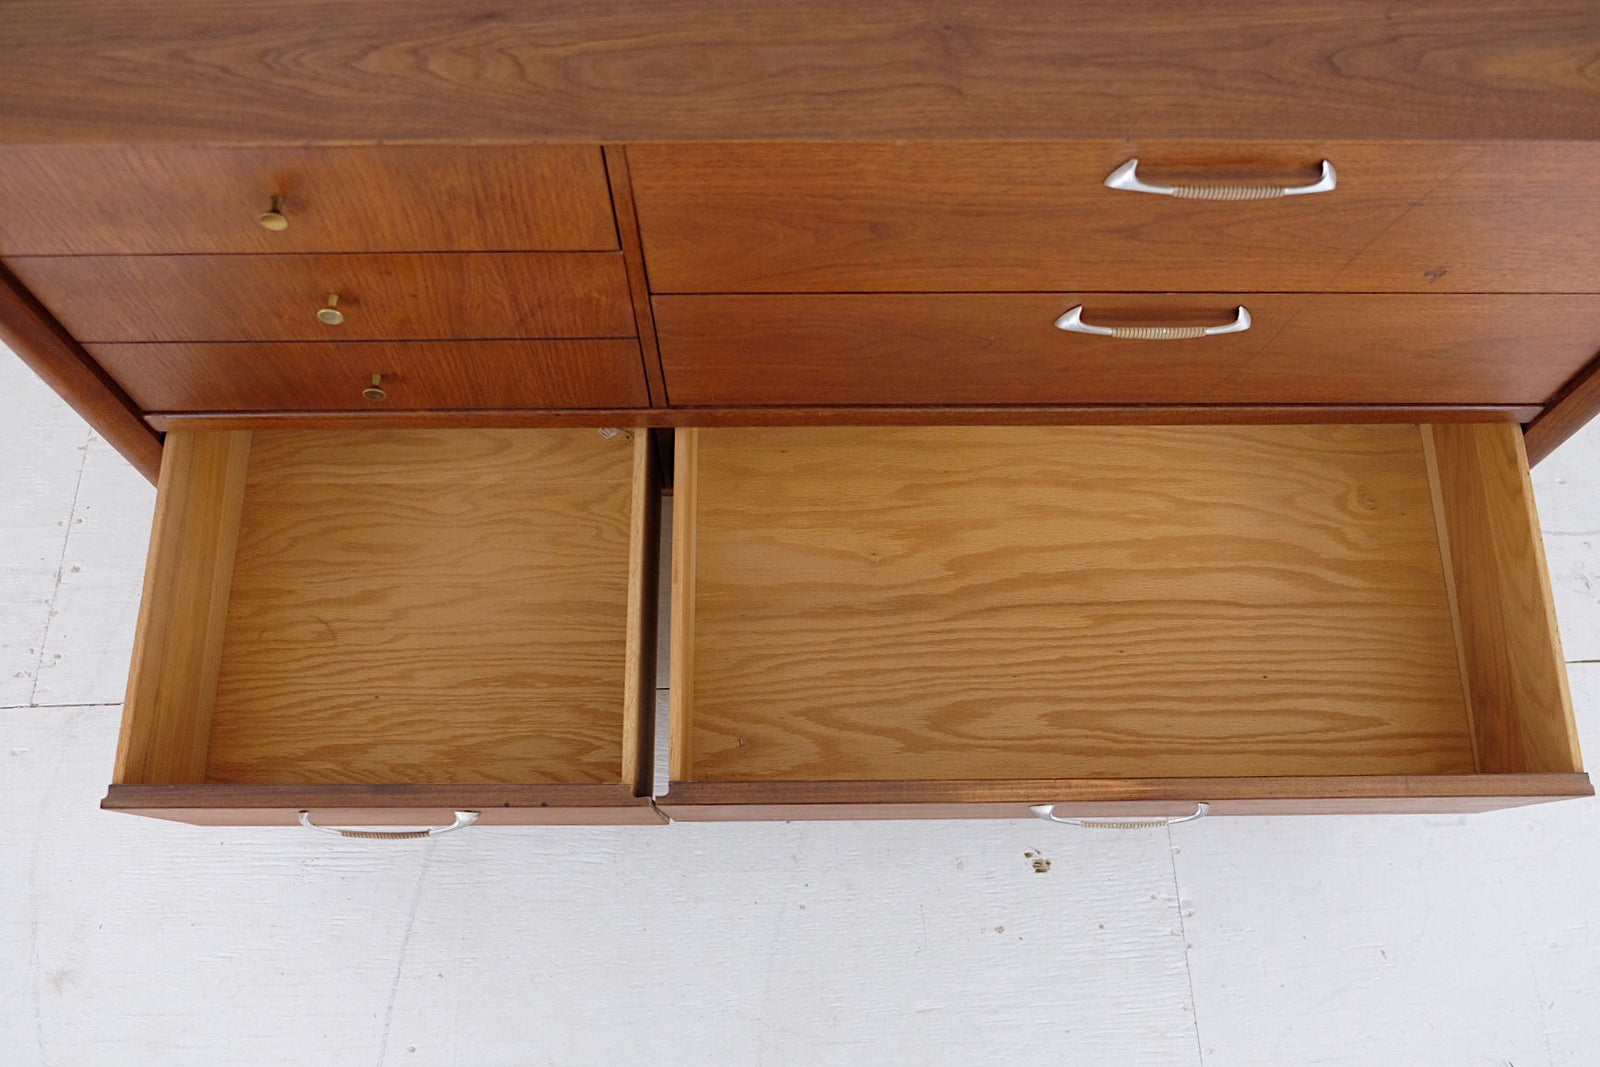 Drexel Mid Century Modern Low Dresser Sideboard Great Handles and Brass Pulls Six Drawers